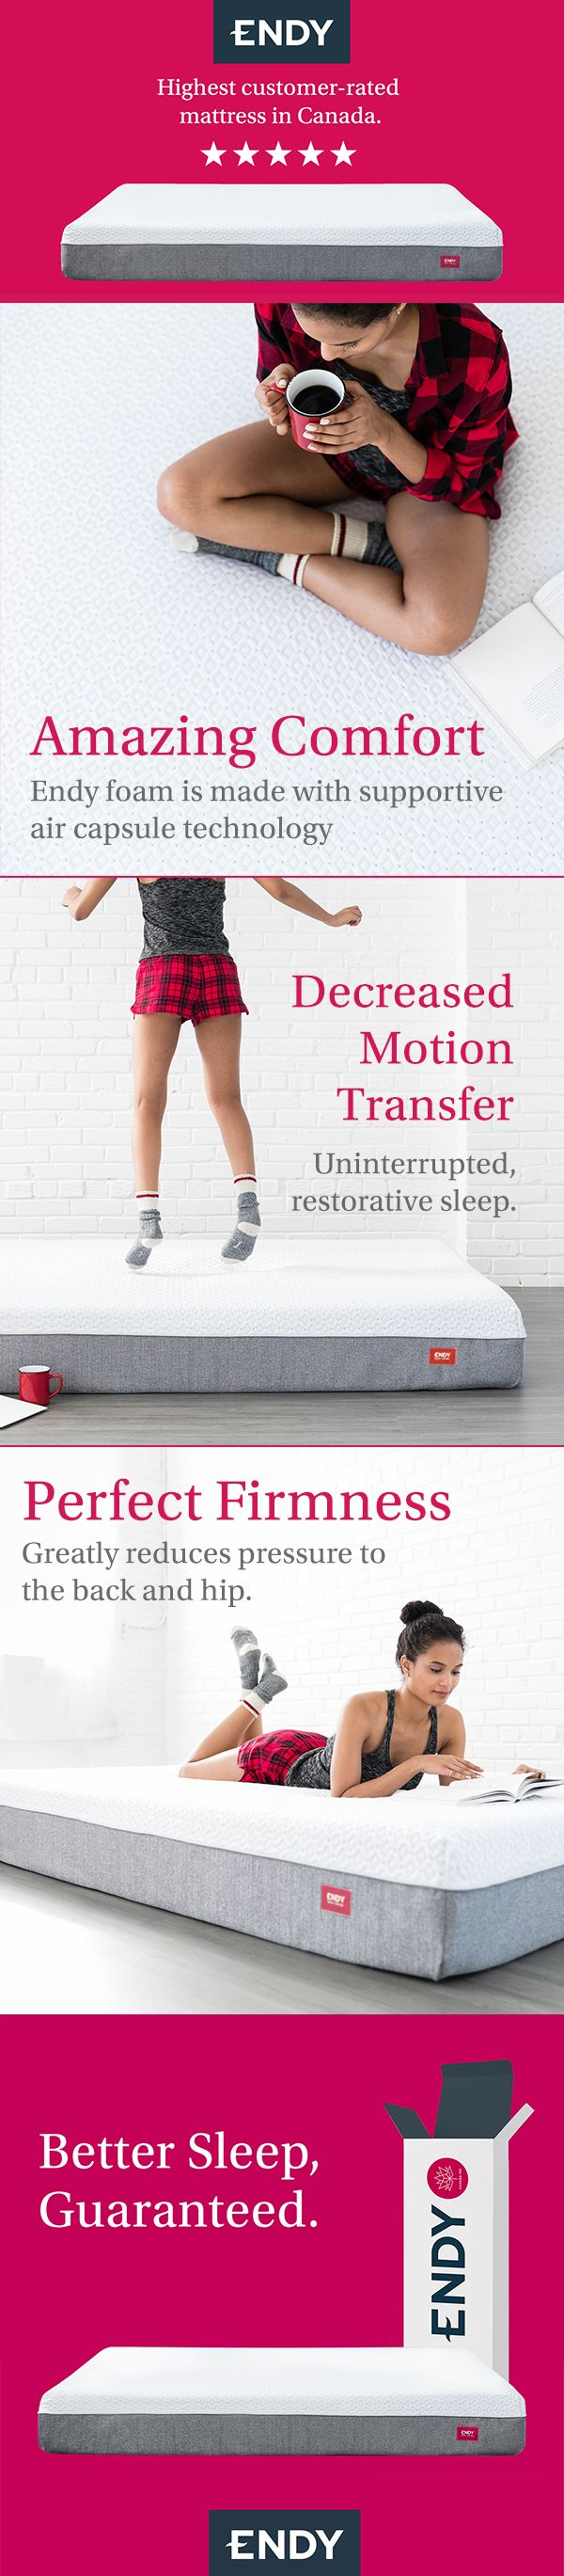 Unbox The Endy Mattress. Better Sleep, Guaranteed.